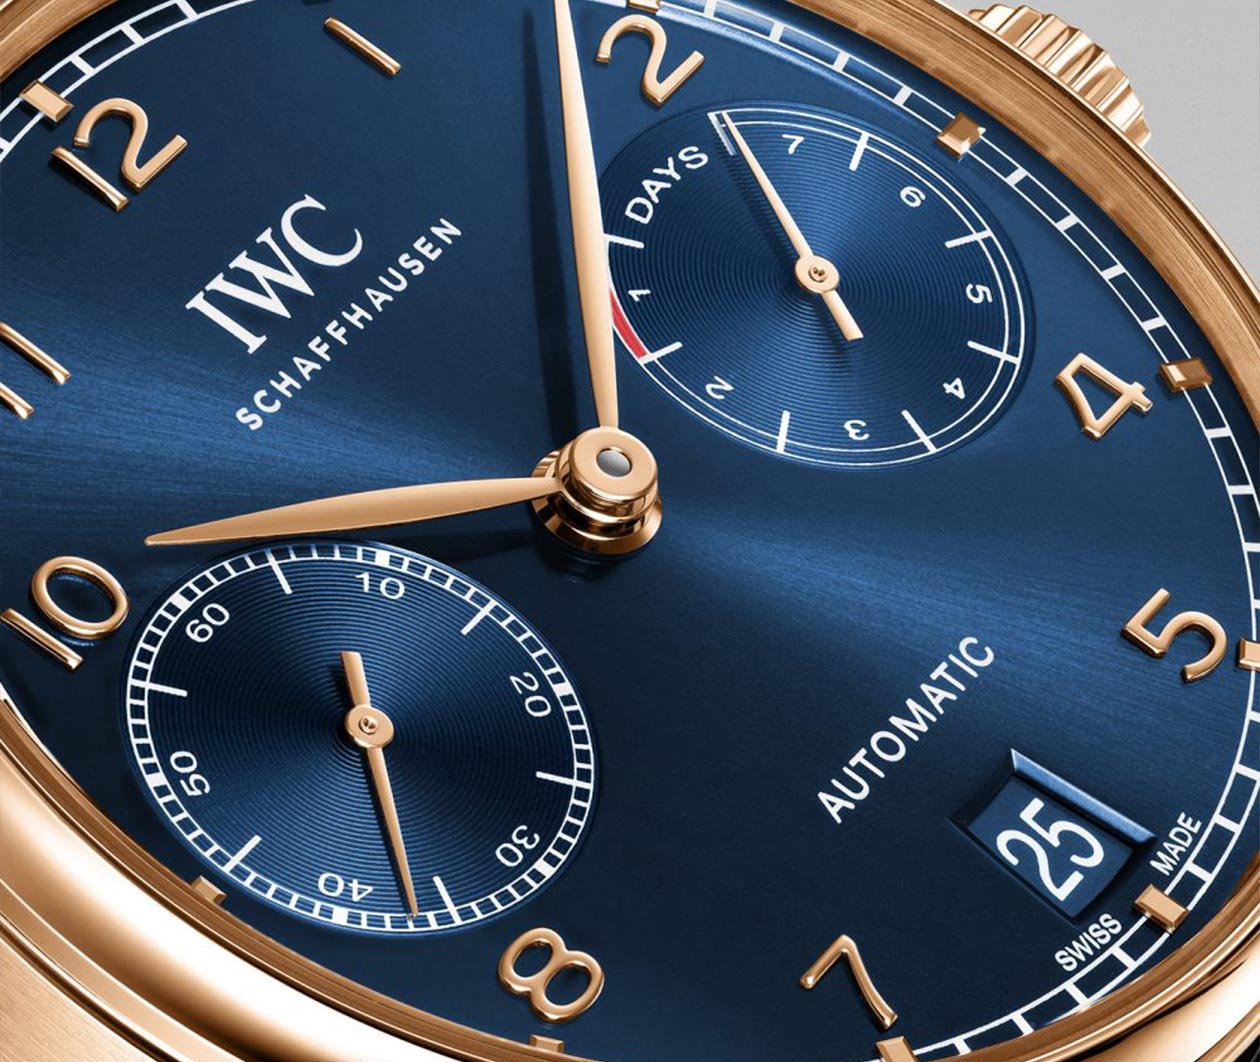 IWC Portugieser AutomaticBoutiqueEdition IW500713 Carousel 5 FINAL